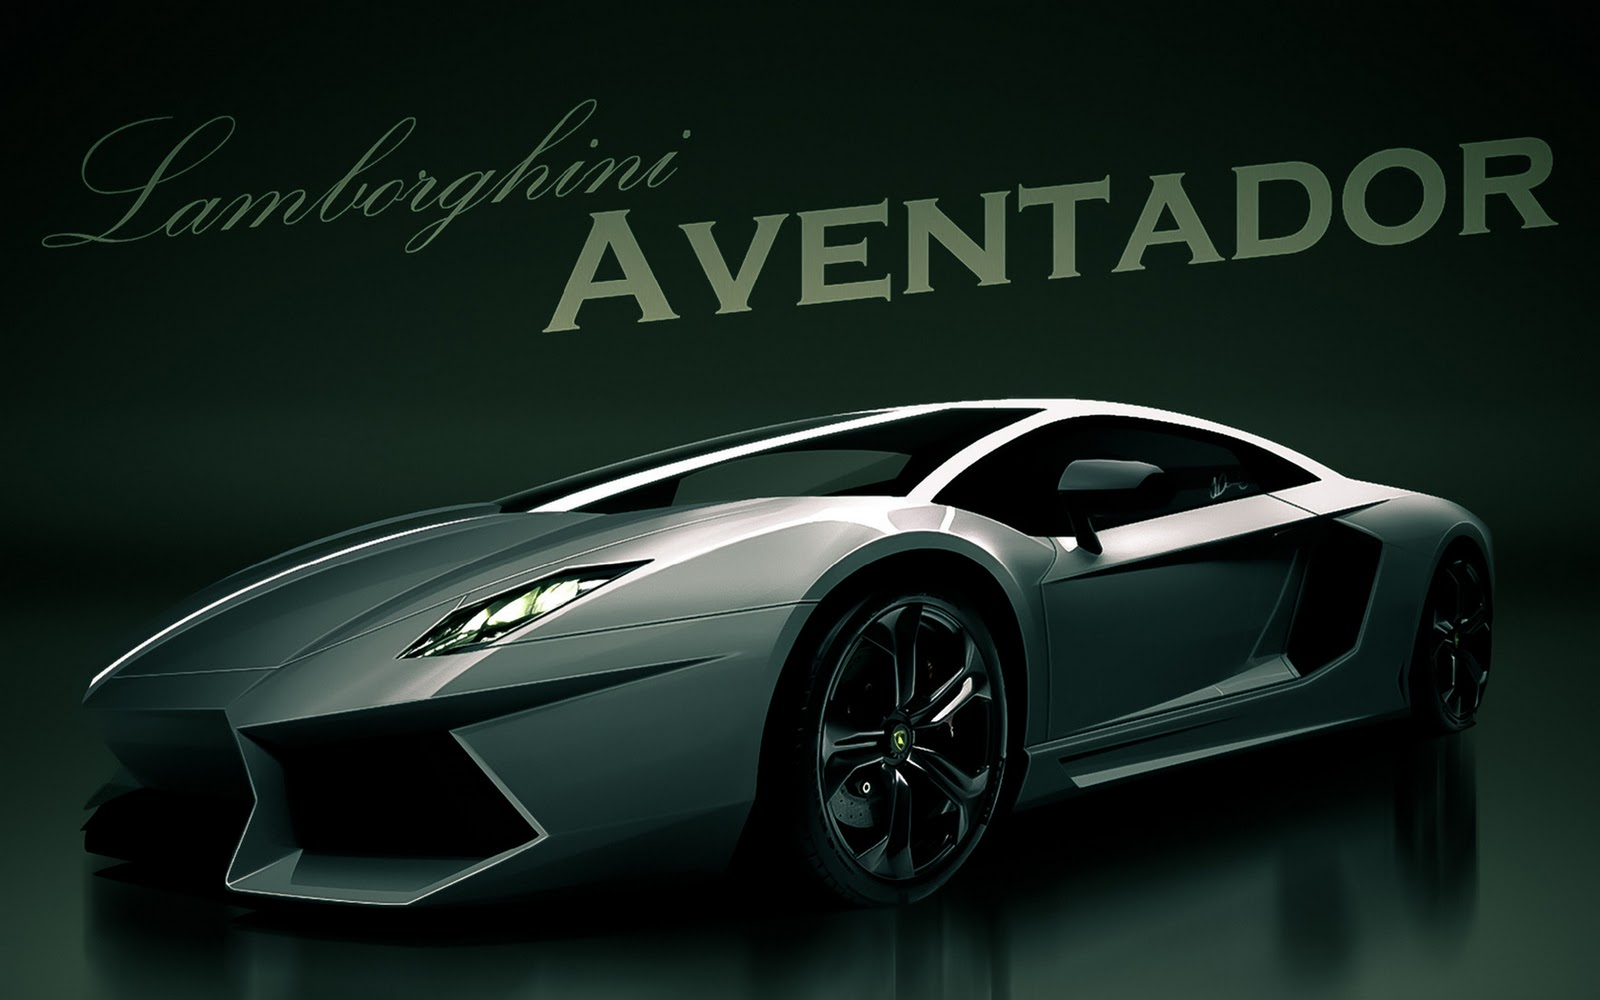 Car Wallpapers Hd Lamborghini | Celebrated Wallpaper